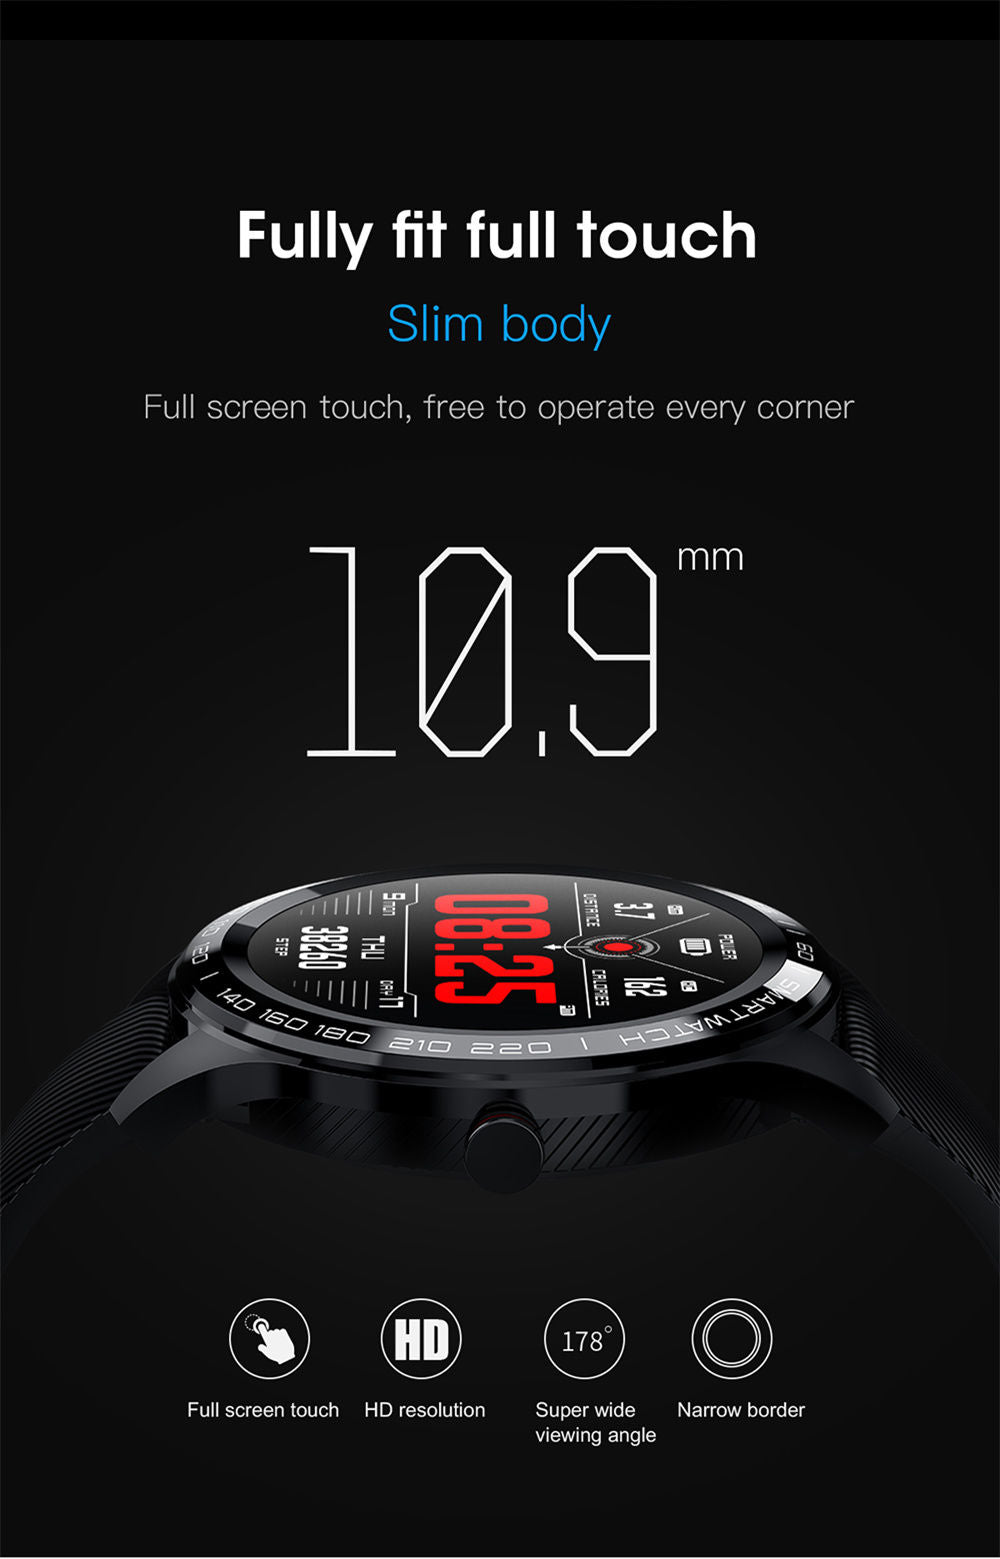 detailed description of L9 smart watch 5